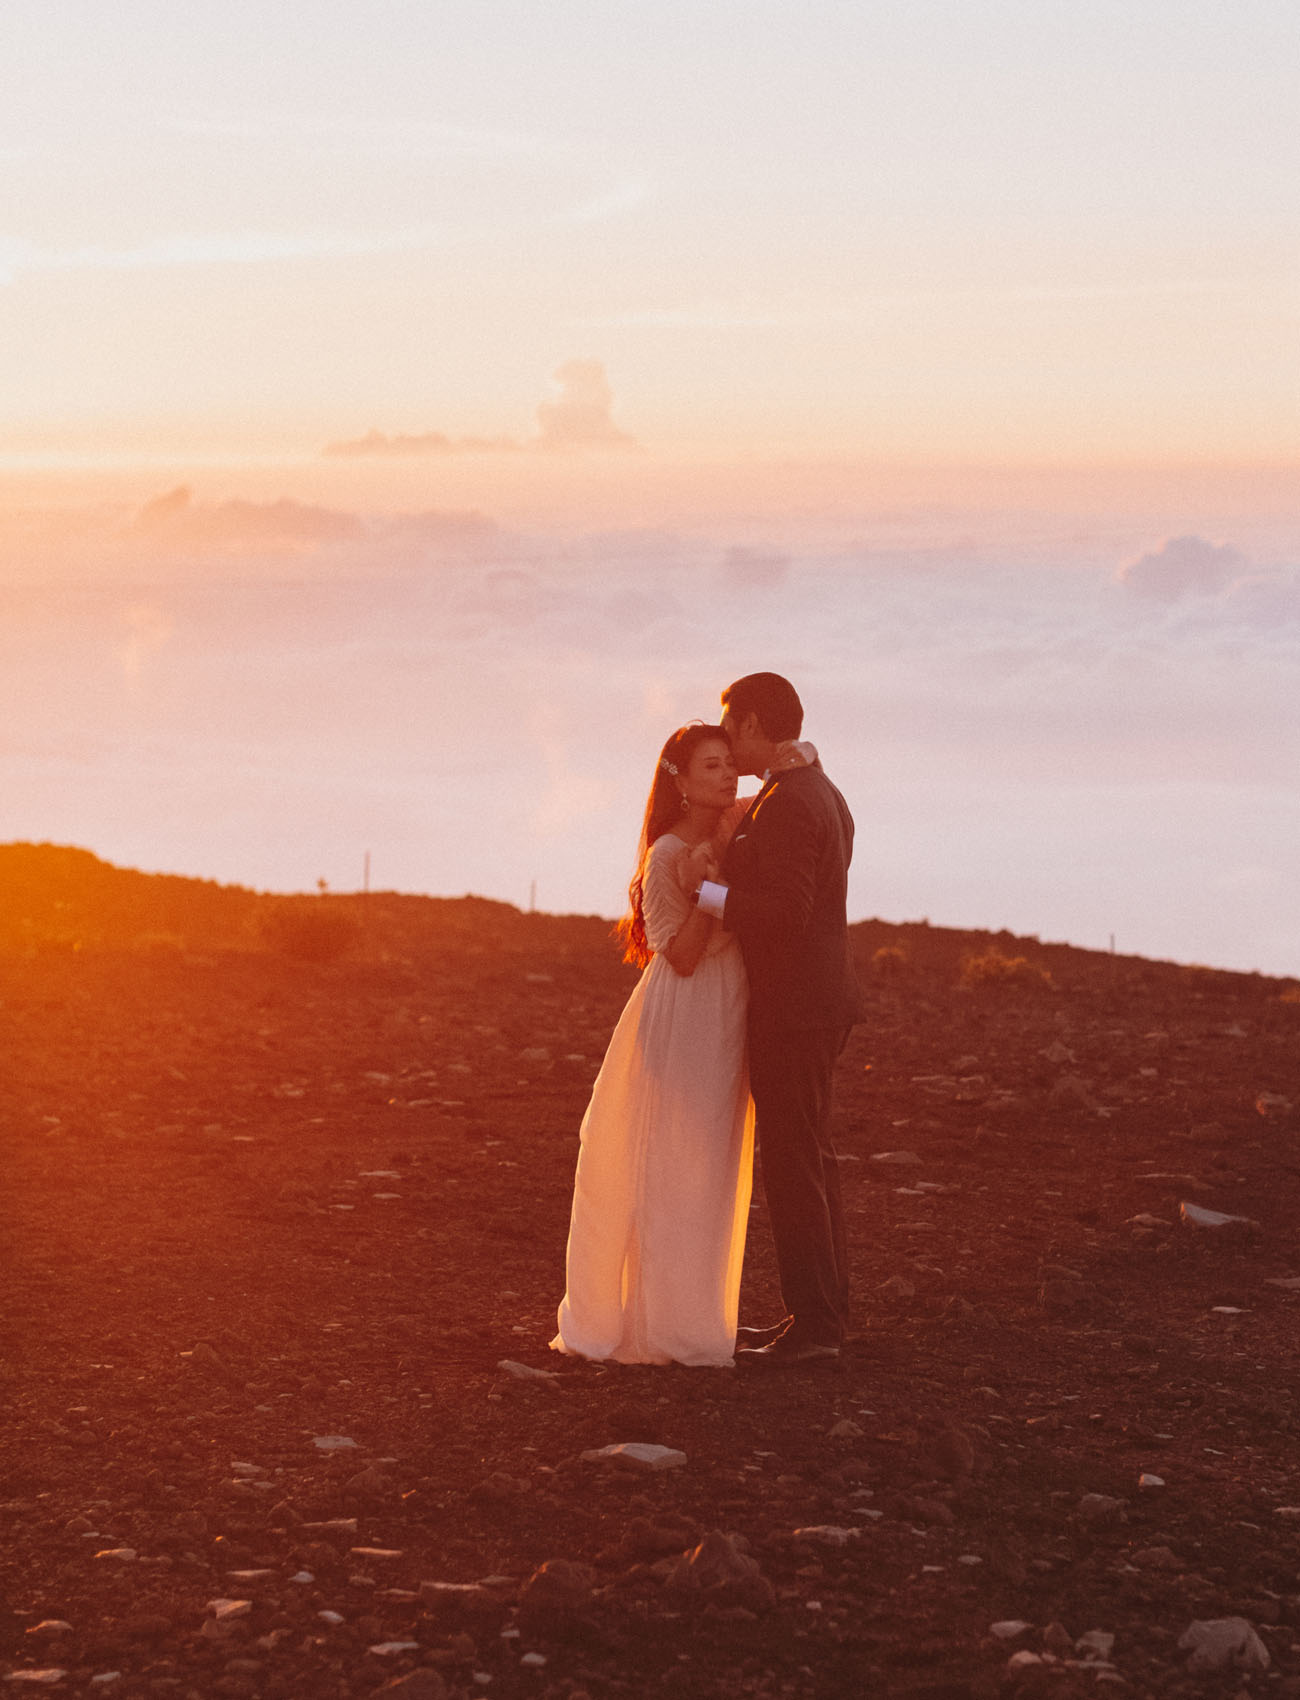 Haleakala Crater on Maui is a great place to elope at sunrise and take in the magical views Hawaii offers its visitors